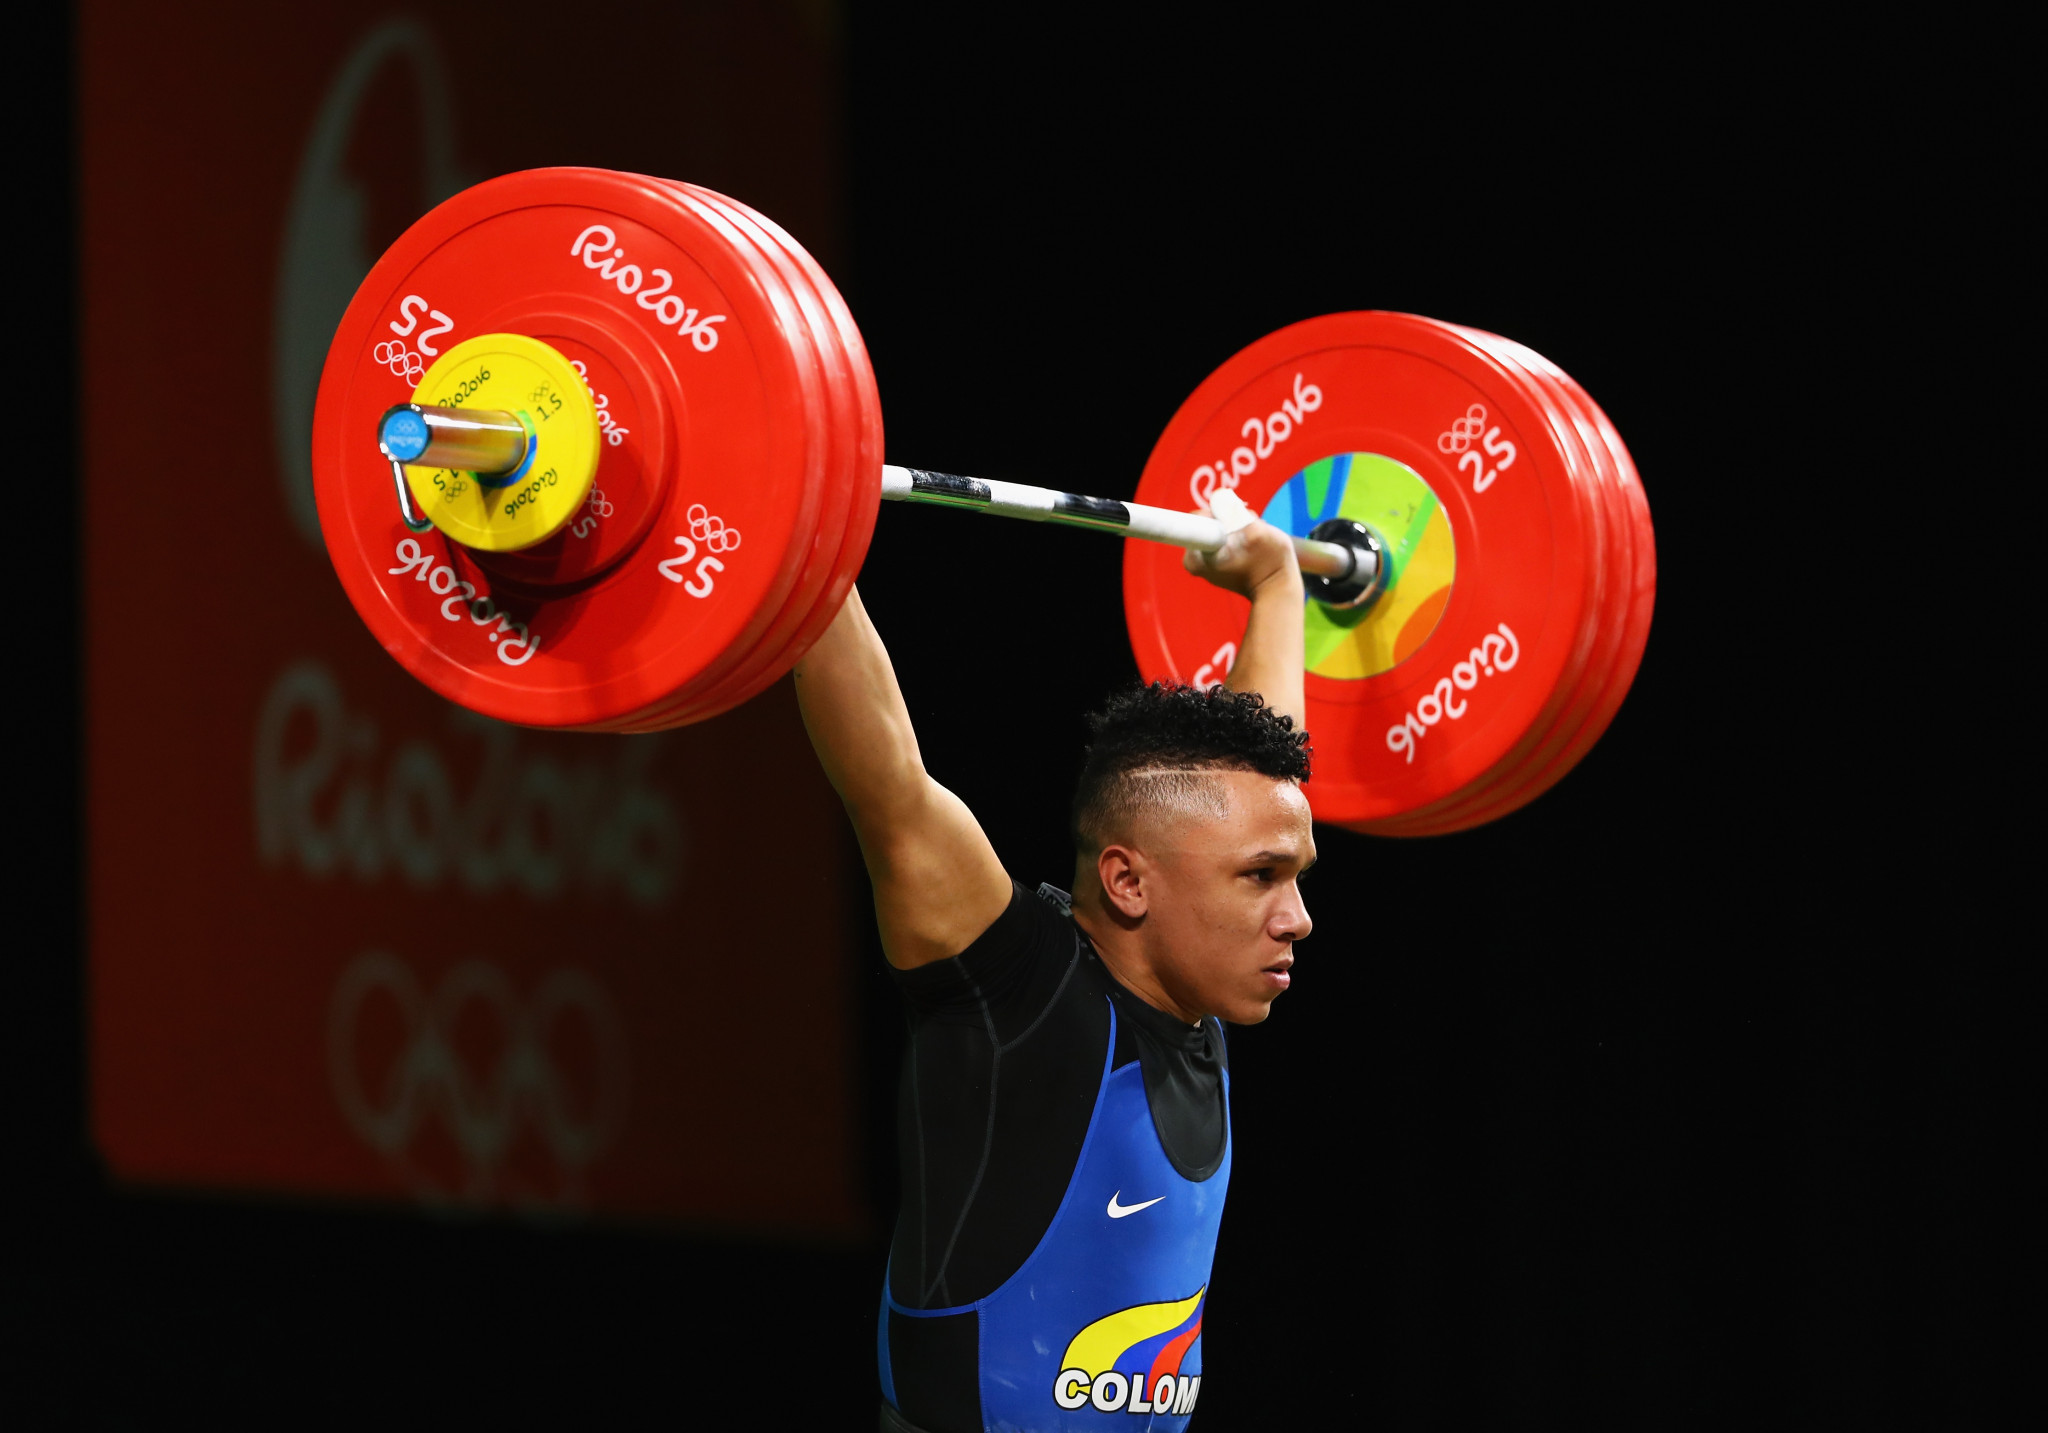 Exclusive: Weightlifters to appeal court ruling that puts Colombia's Tokyo 2020 place under threat